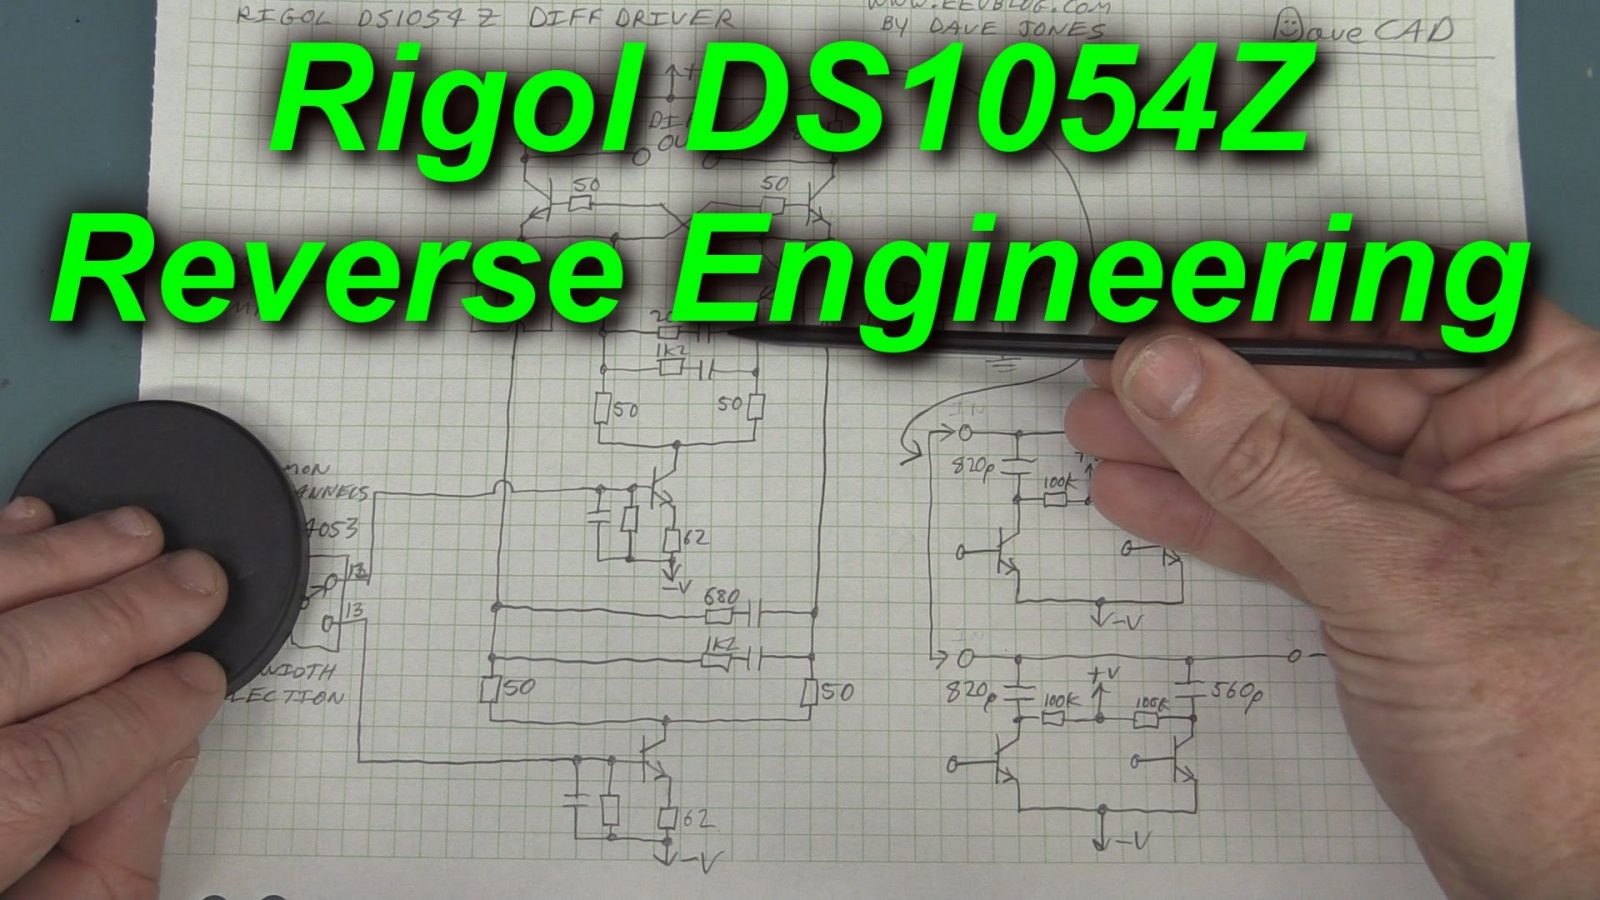 How To Reverse Engineer A Rigol Ds1054z Use Arduino For Projects Proteus Ic Lm741 Op Amp Operational Amplifier Circuit Youtube